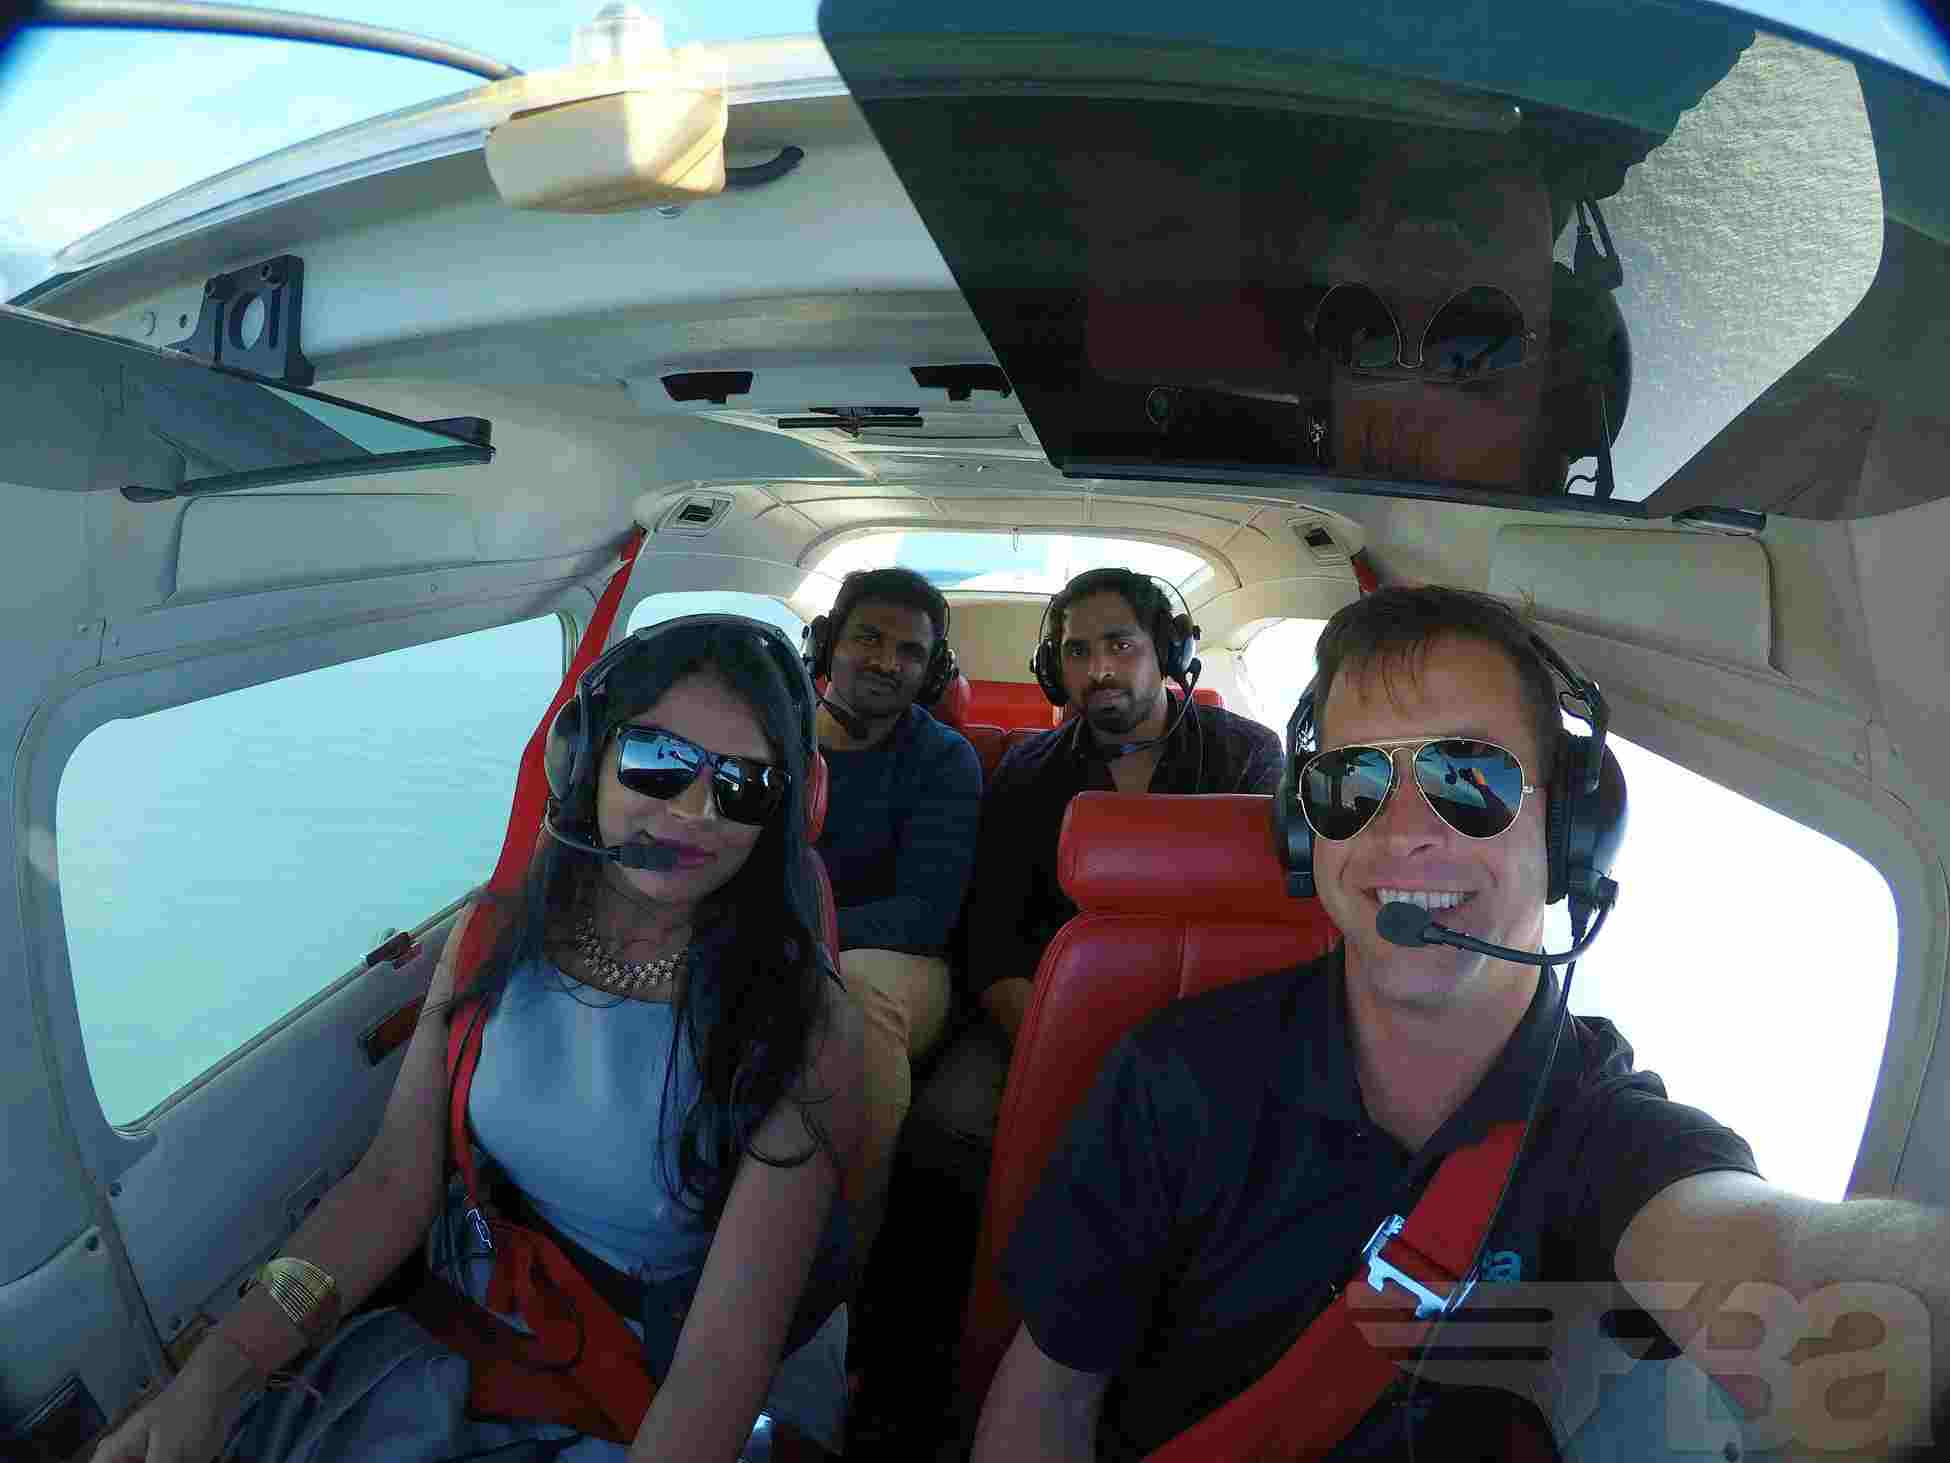 U-Fly with Friends Peninsula, Sky Plane Tour San Francisco Bay Area  - 20 Minutes